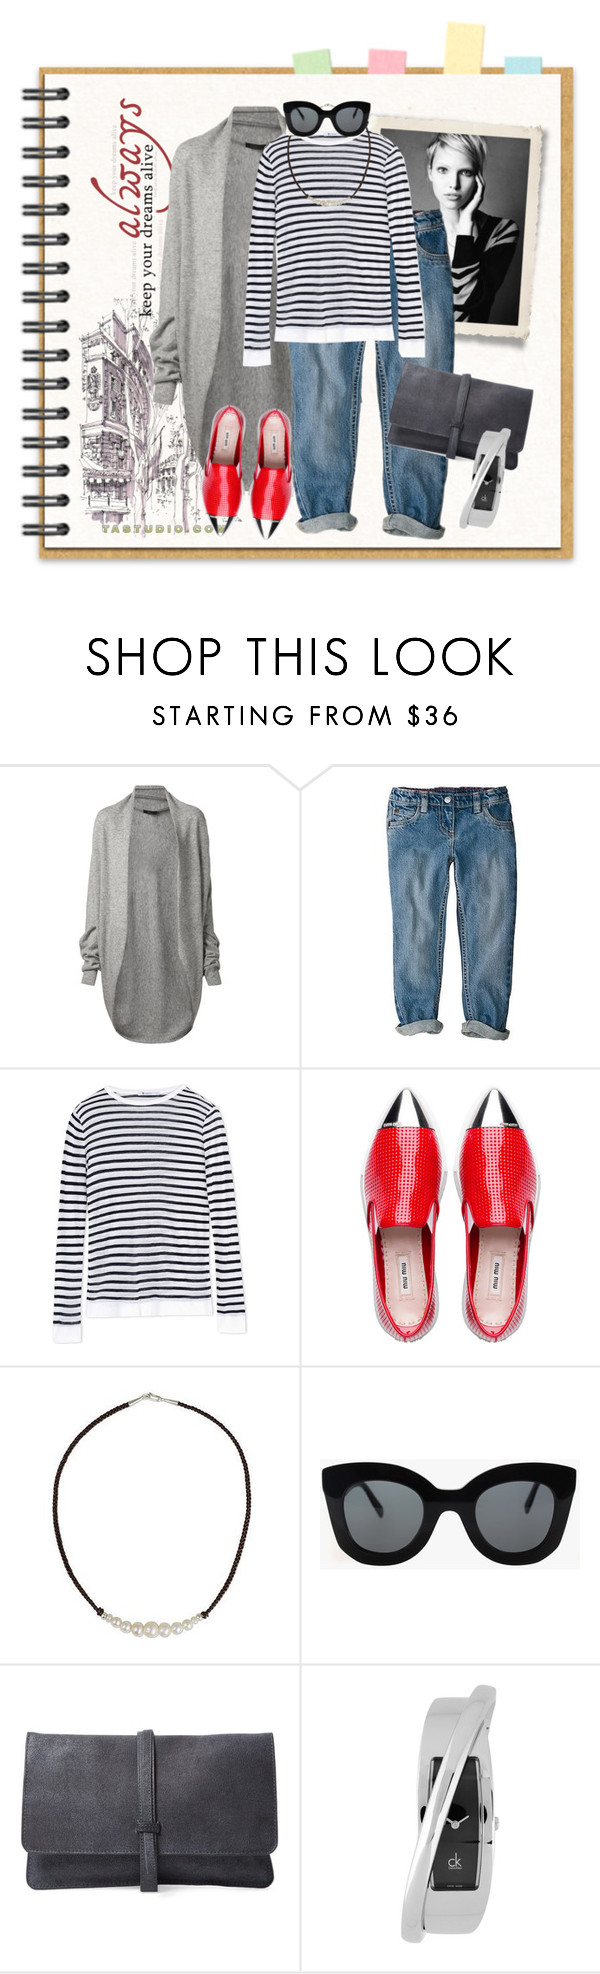 """Casual Chic"" by gangdise ❤ liked on Polyvore featuring The Row, Hanna Andersson, T By Alexander Wang, NOVICA, CÉLINE, Cynthia Vincent, ck Calvin Klein, women's clothing, women and female"